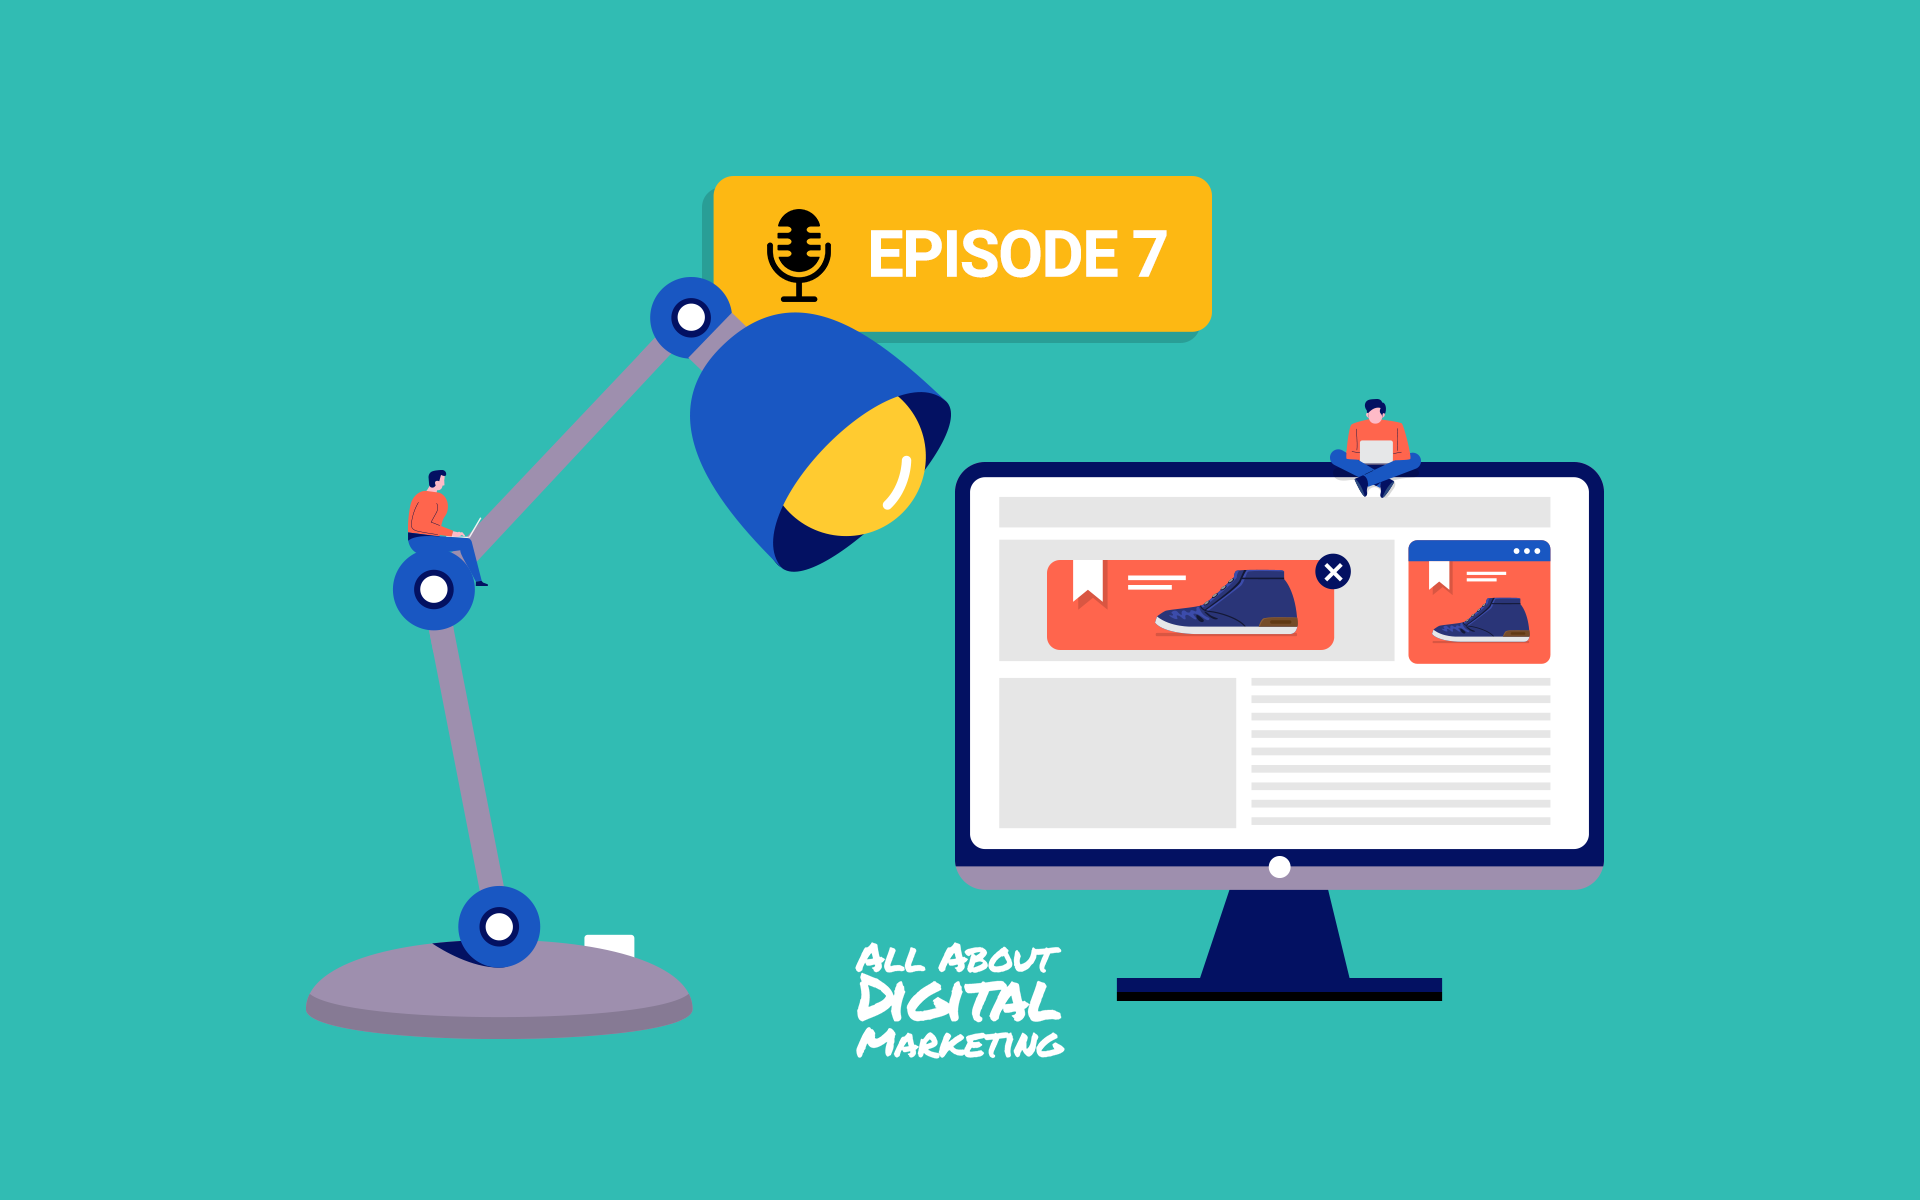 Ep.7 – SEO for Small Business with Konstantinos Ntoukakis